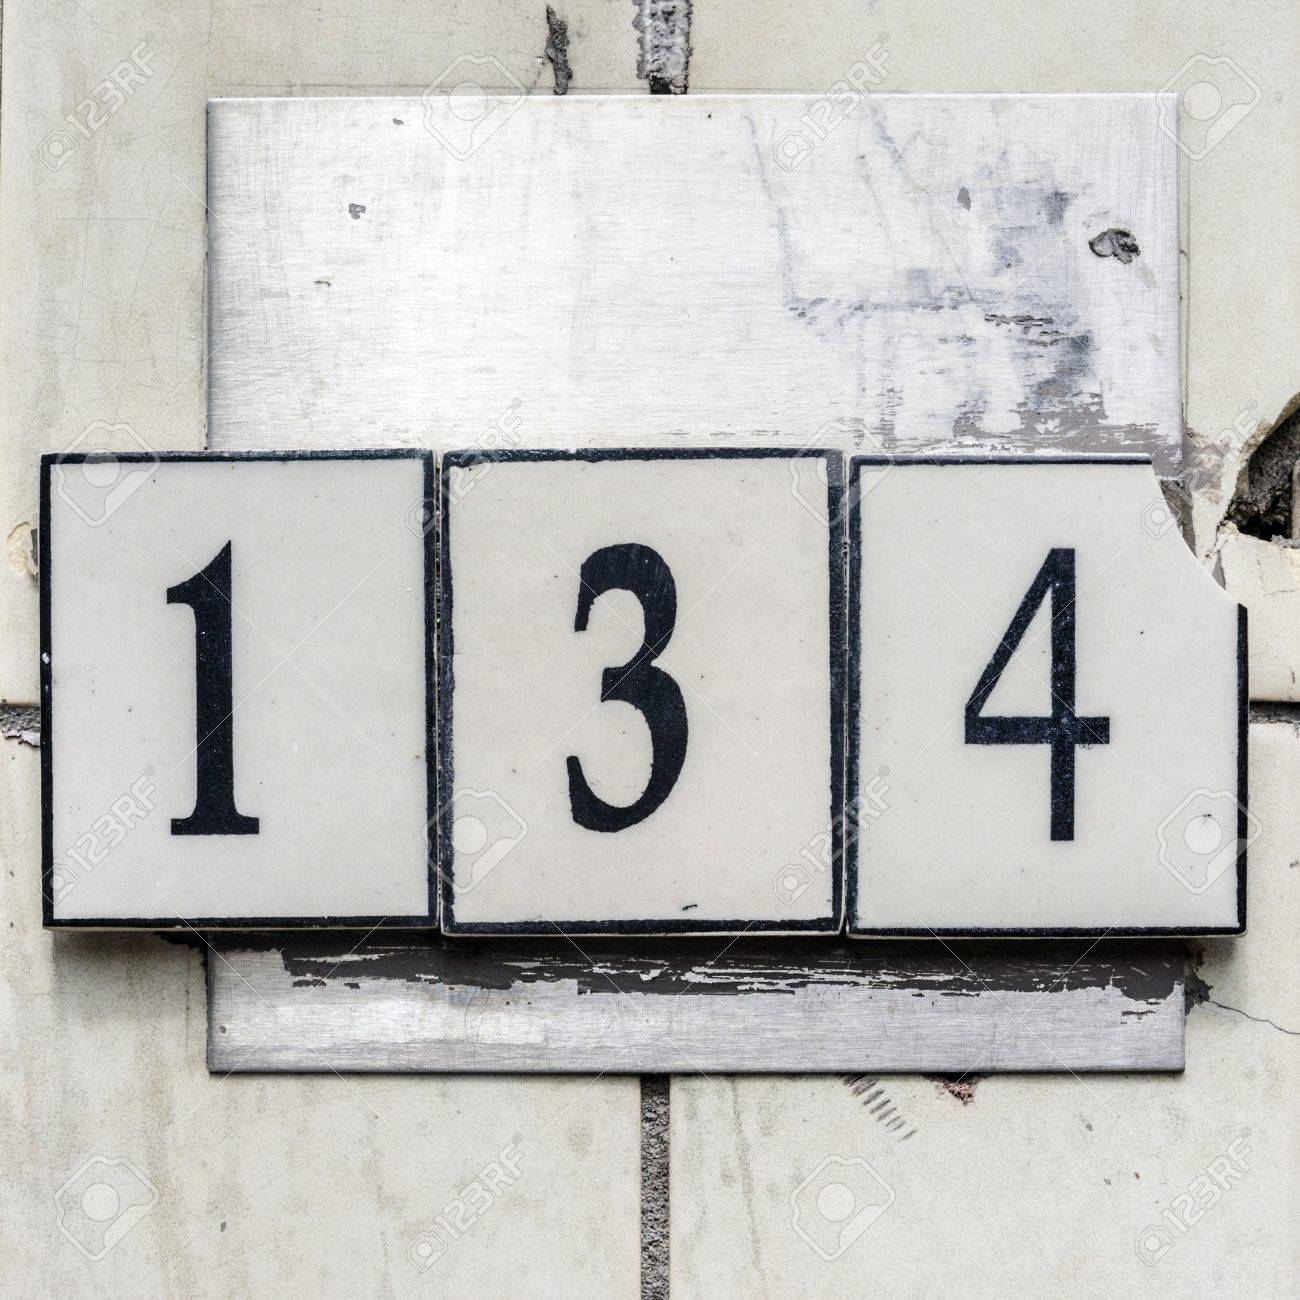 Ceramic house number tiles image collections tile flooring mexican ceramic tile house numbers images tile flooring design ideas mexican ceramic tile house numbers choice dailygadgetfo Gallery